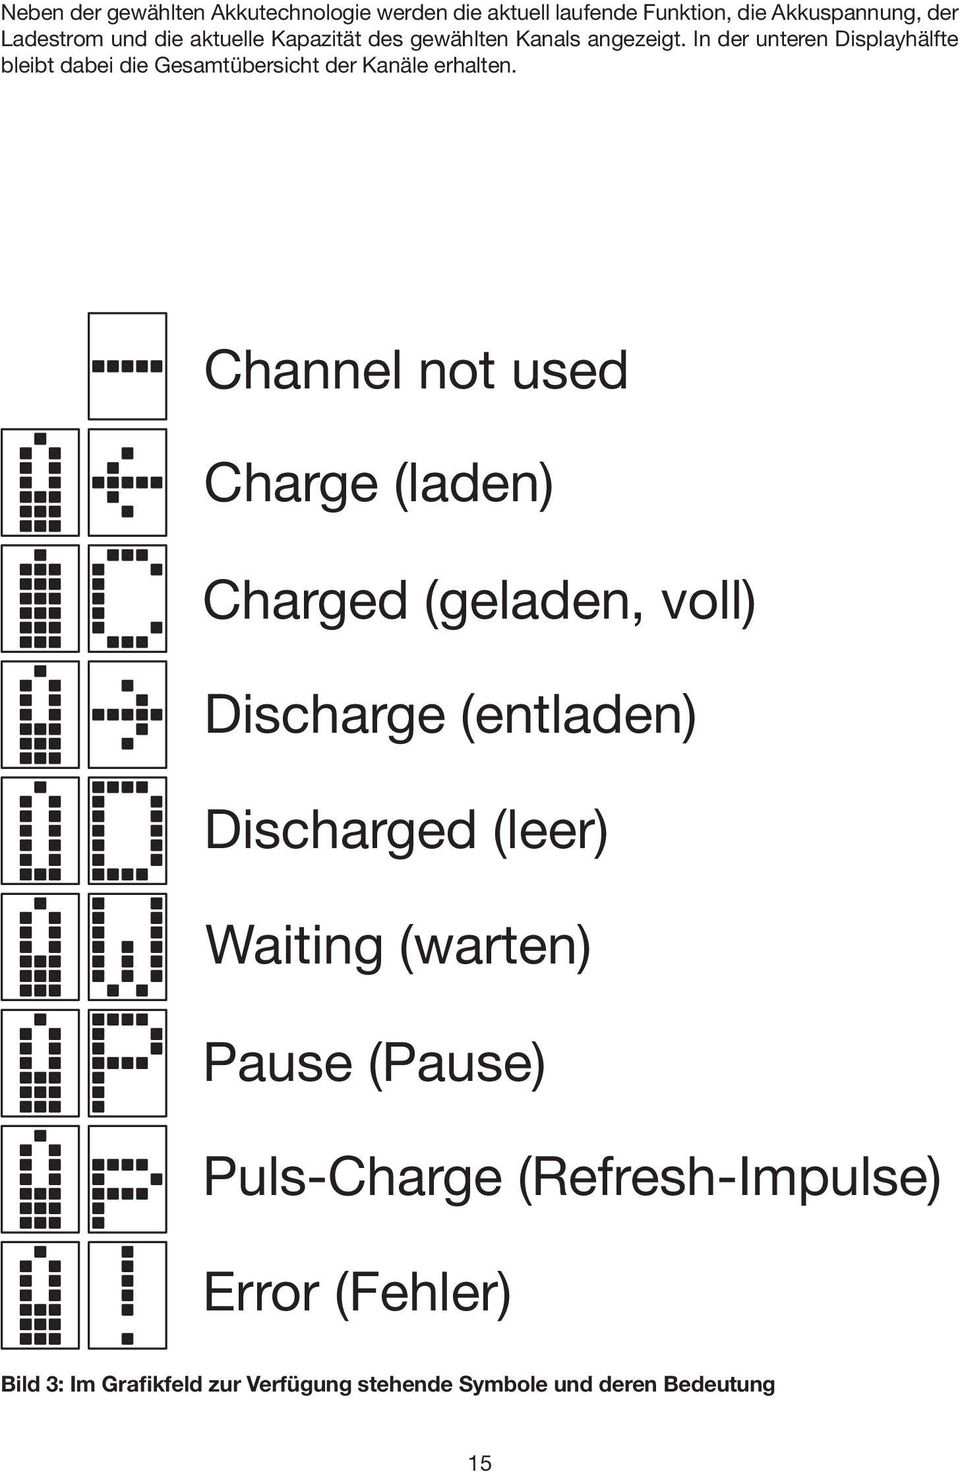 Channel not used Charge (laden) Charged (geladen, voll) Discharge (entladen) Discharged (leer) Waiting (warten) Pause